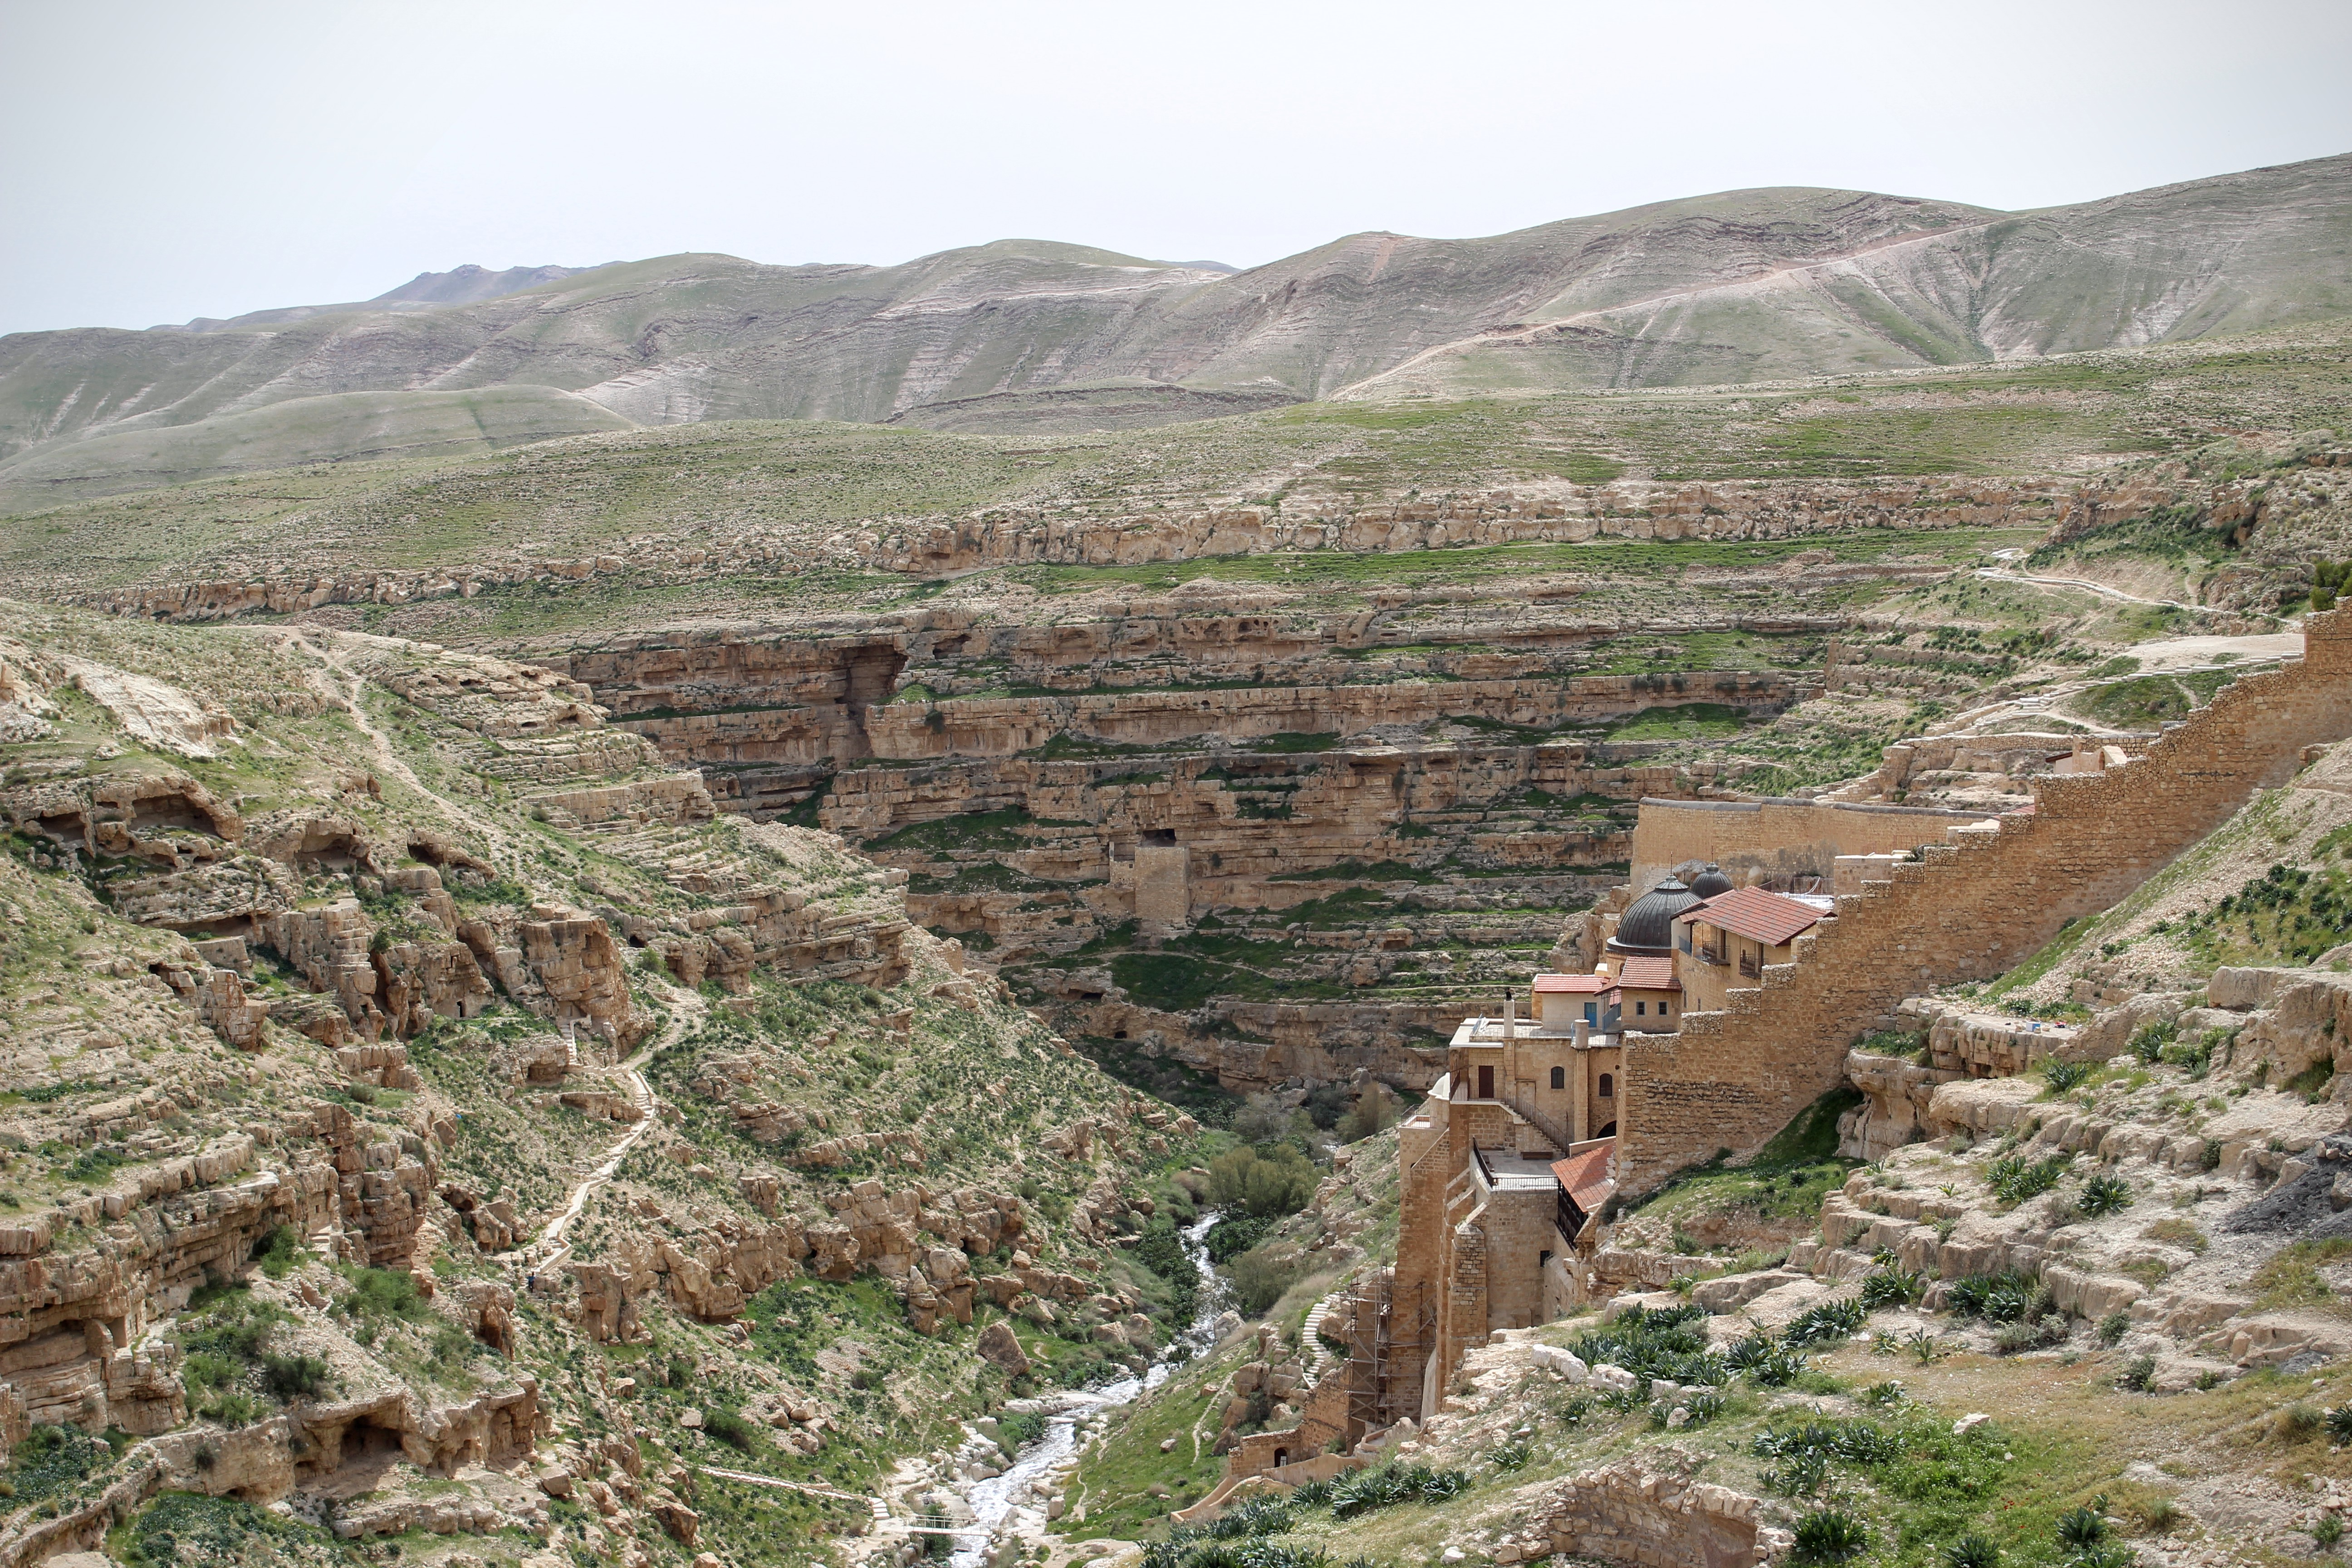 Mar Saba from the side